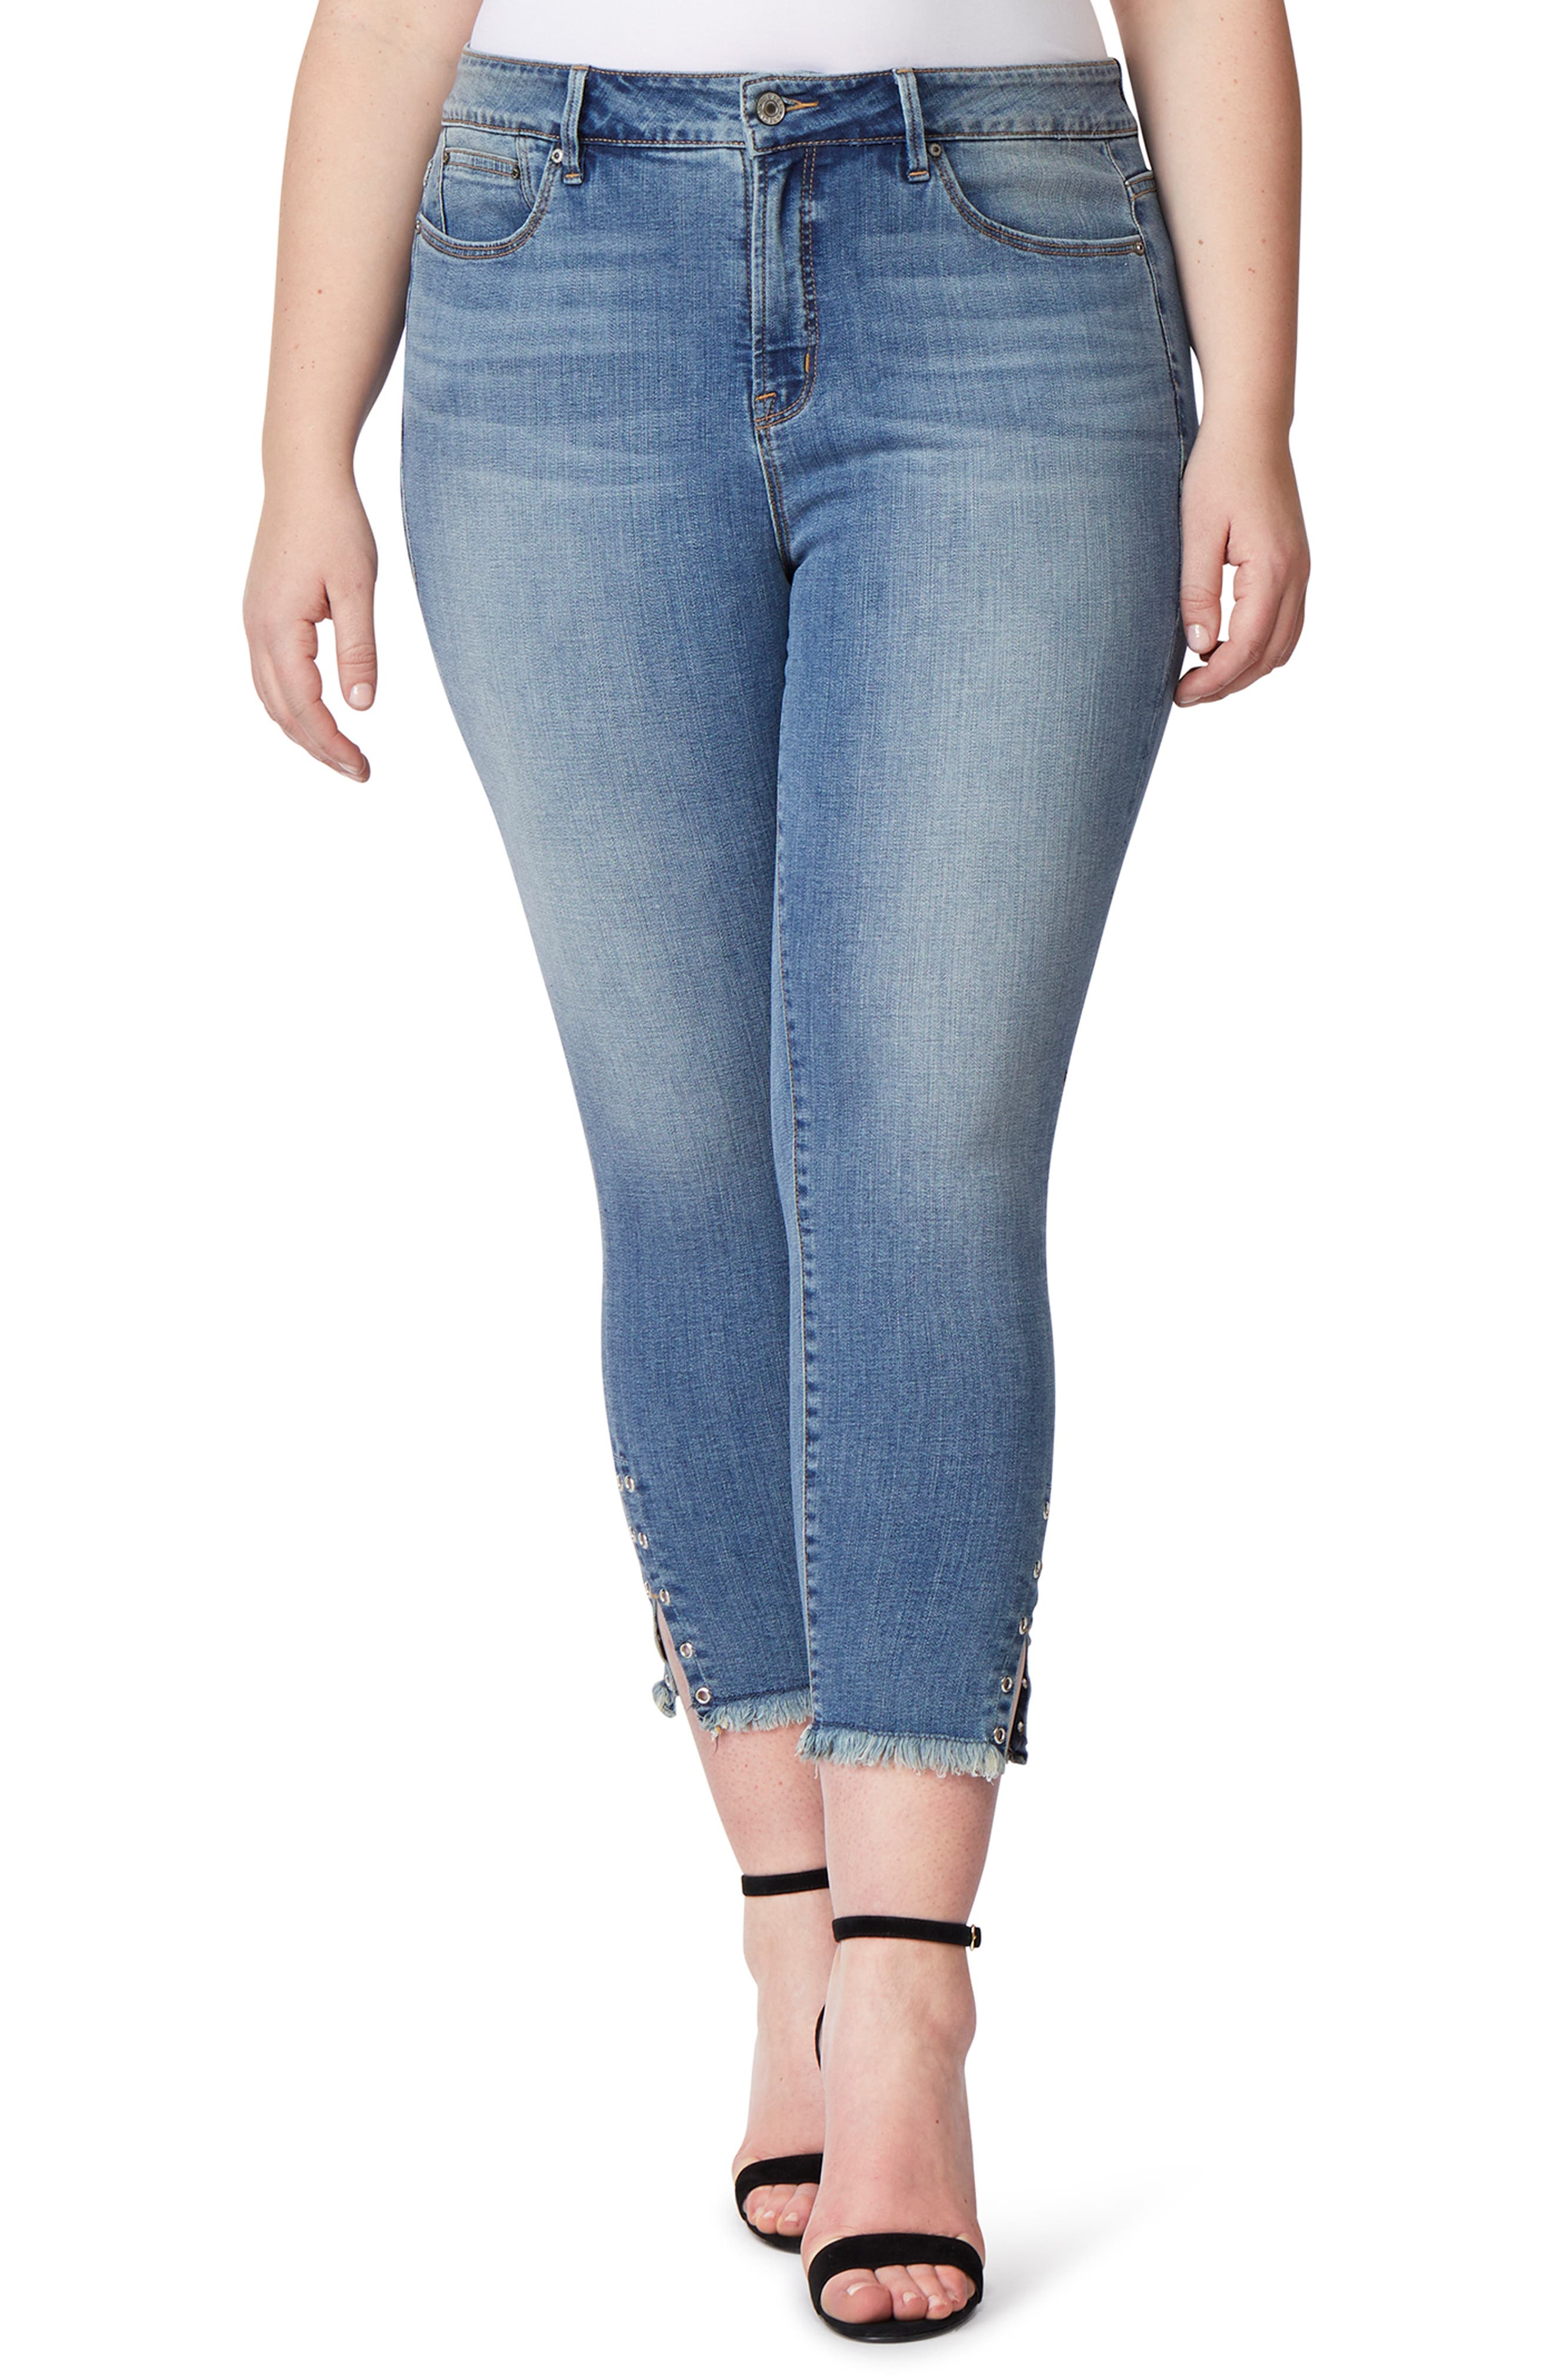 THE DAZZLER CROP SKINNY JEANS